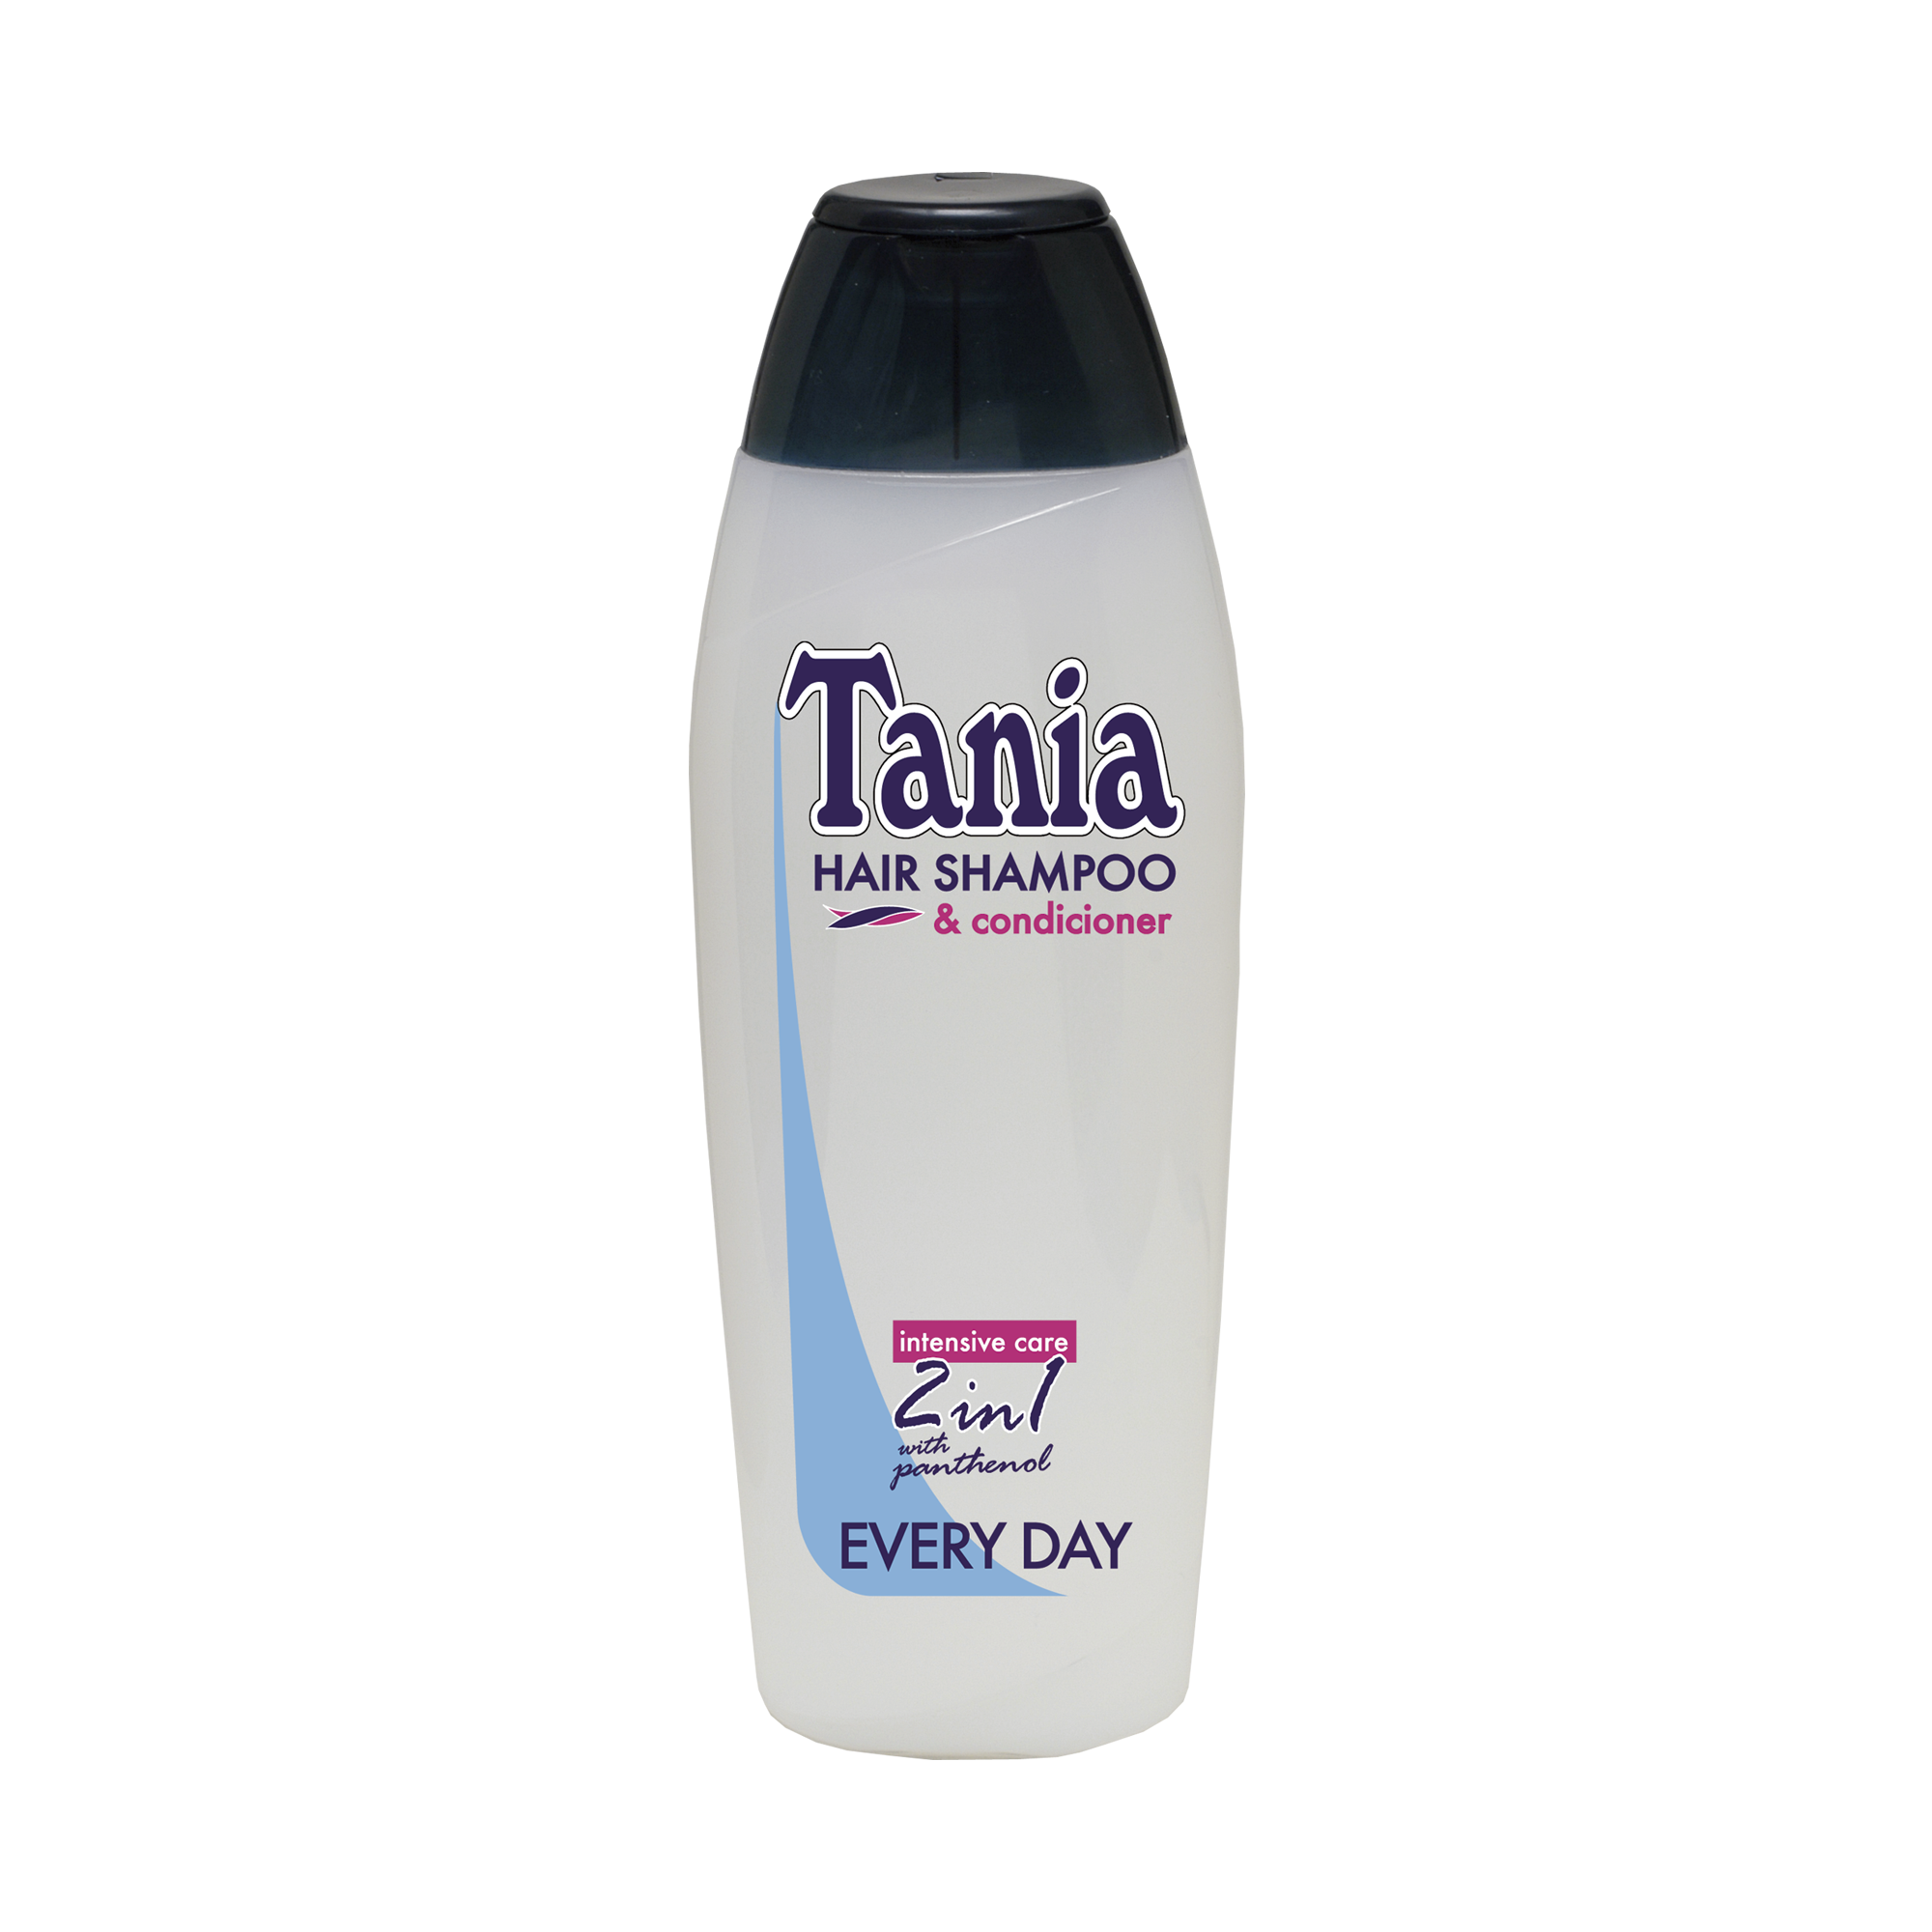 Tania 2in1 Every Day shampoo and conditioner